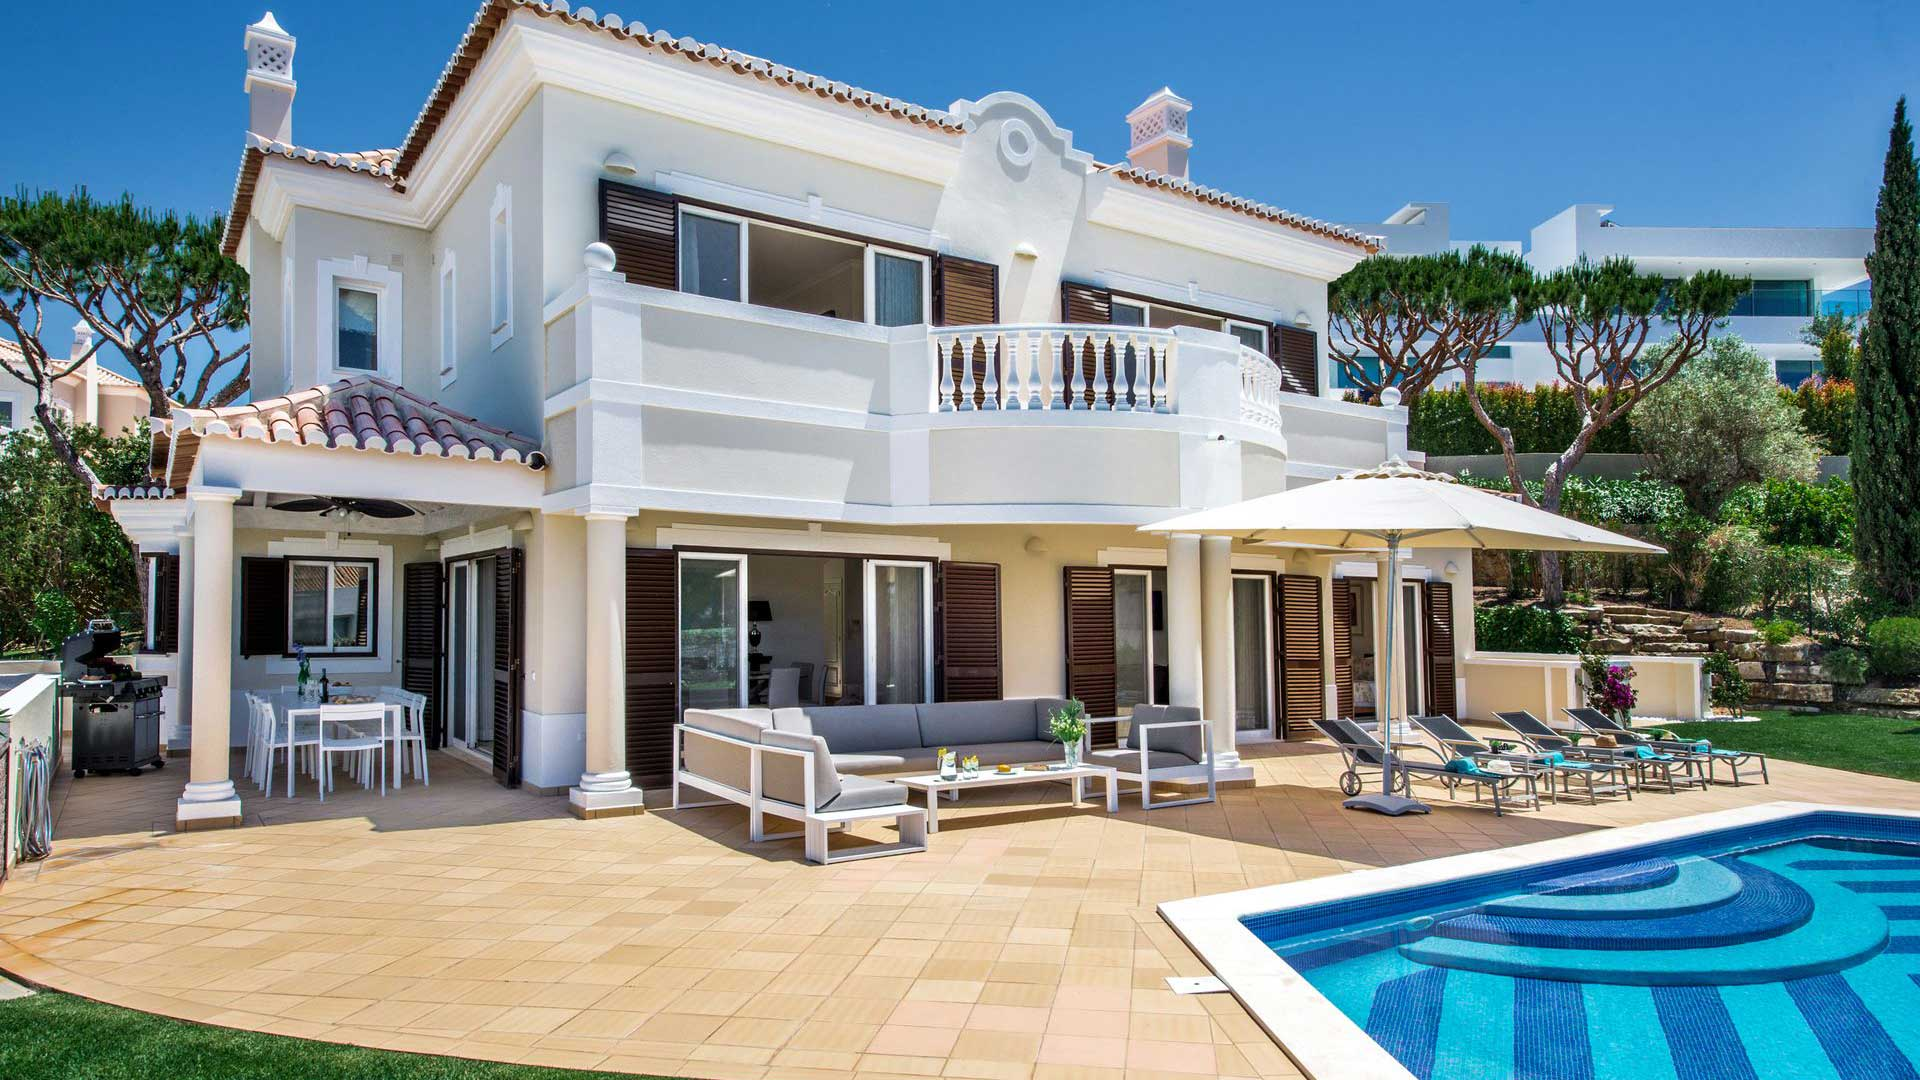 Villa Villa Melanite, Location à Algarve